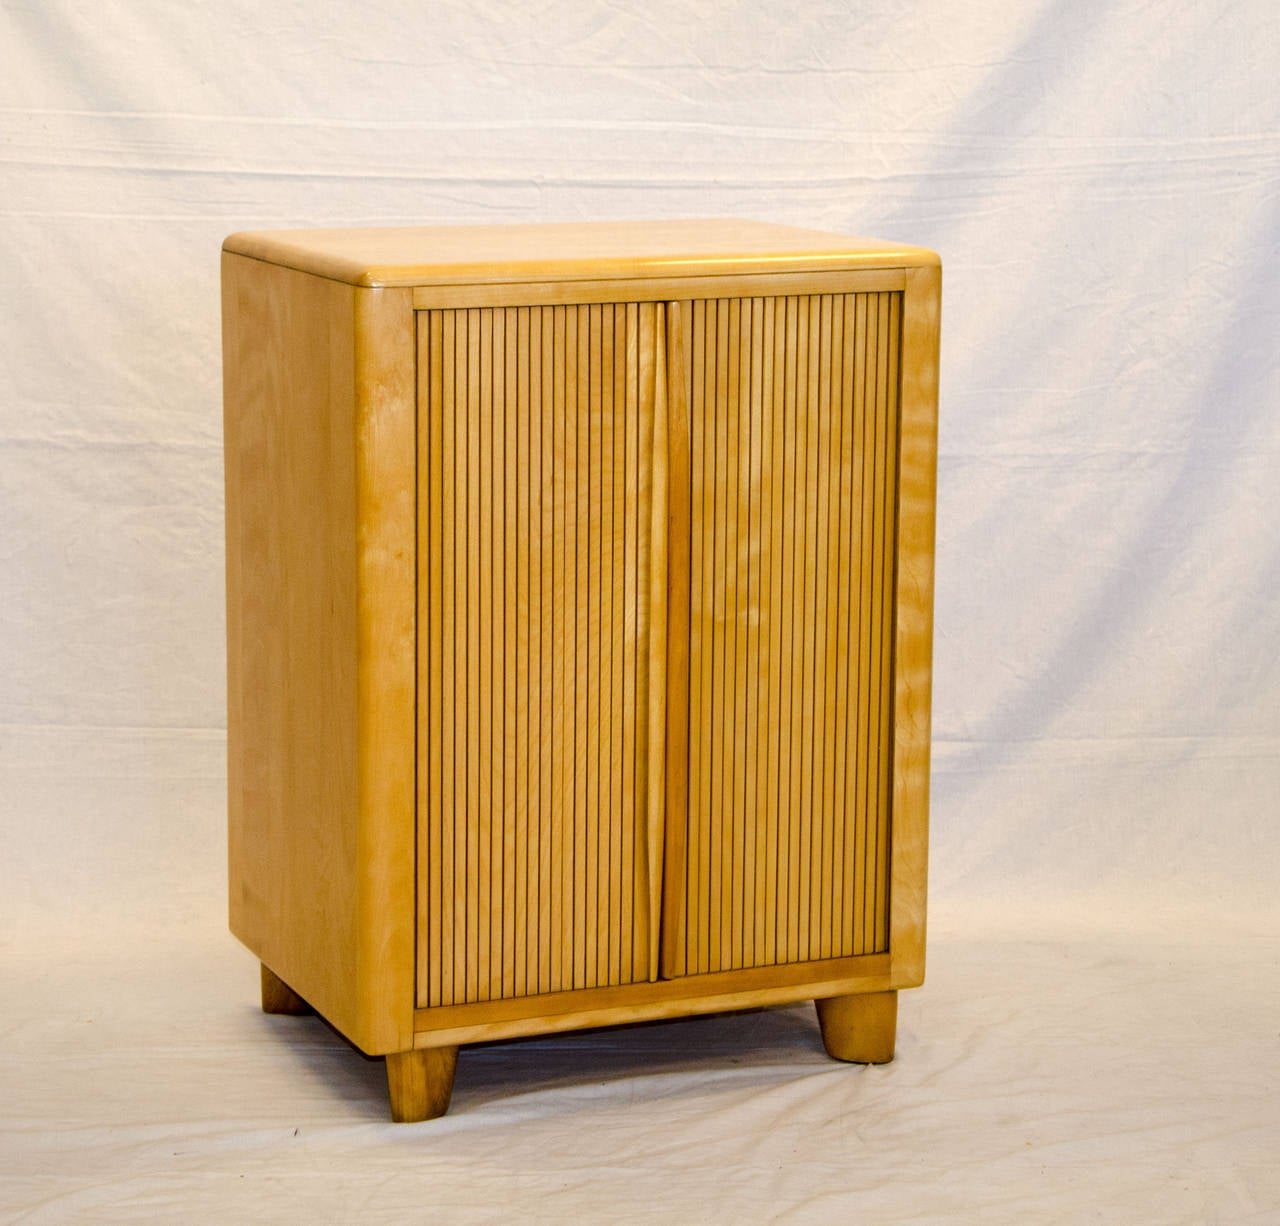 Tambour Storage Cabinet Heywood Wakefield at 1stdibs